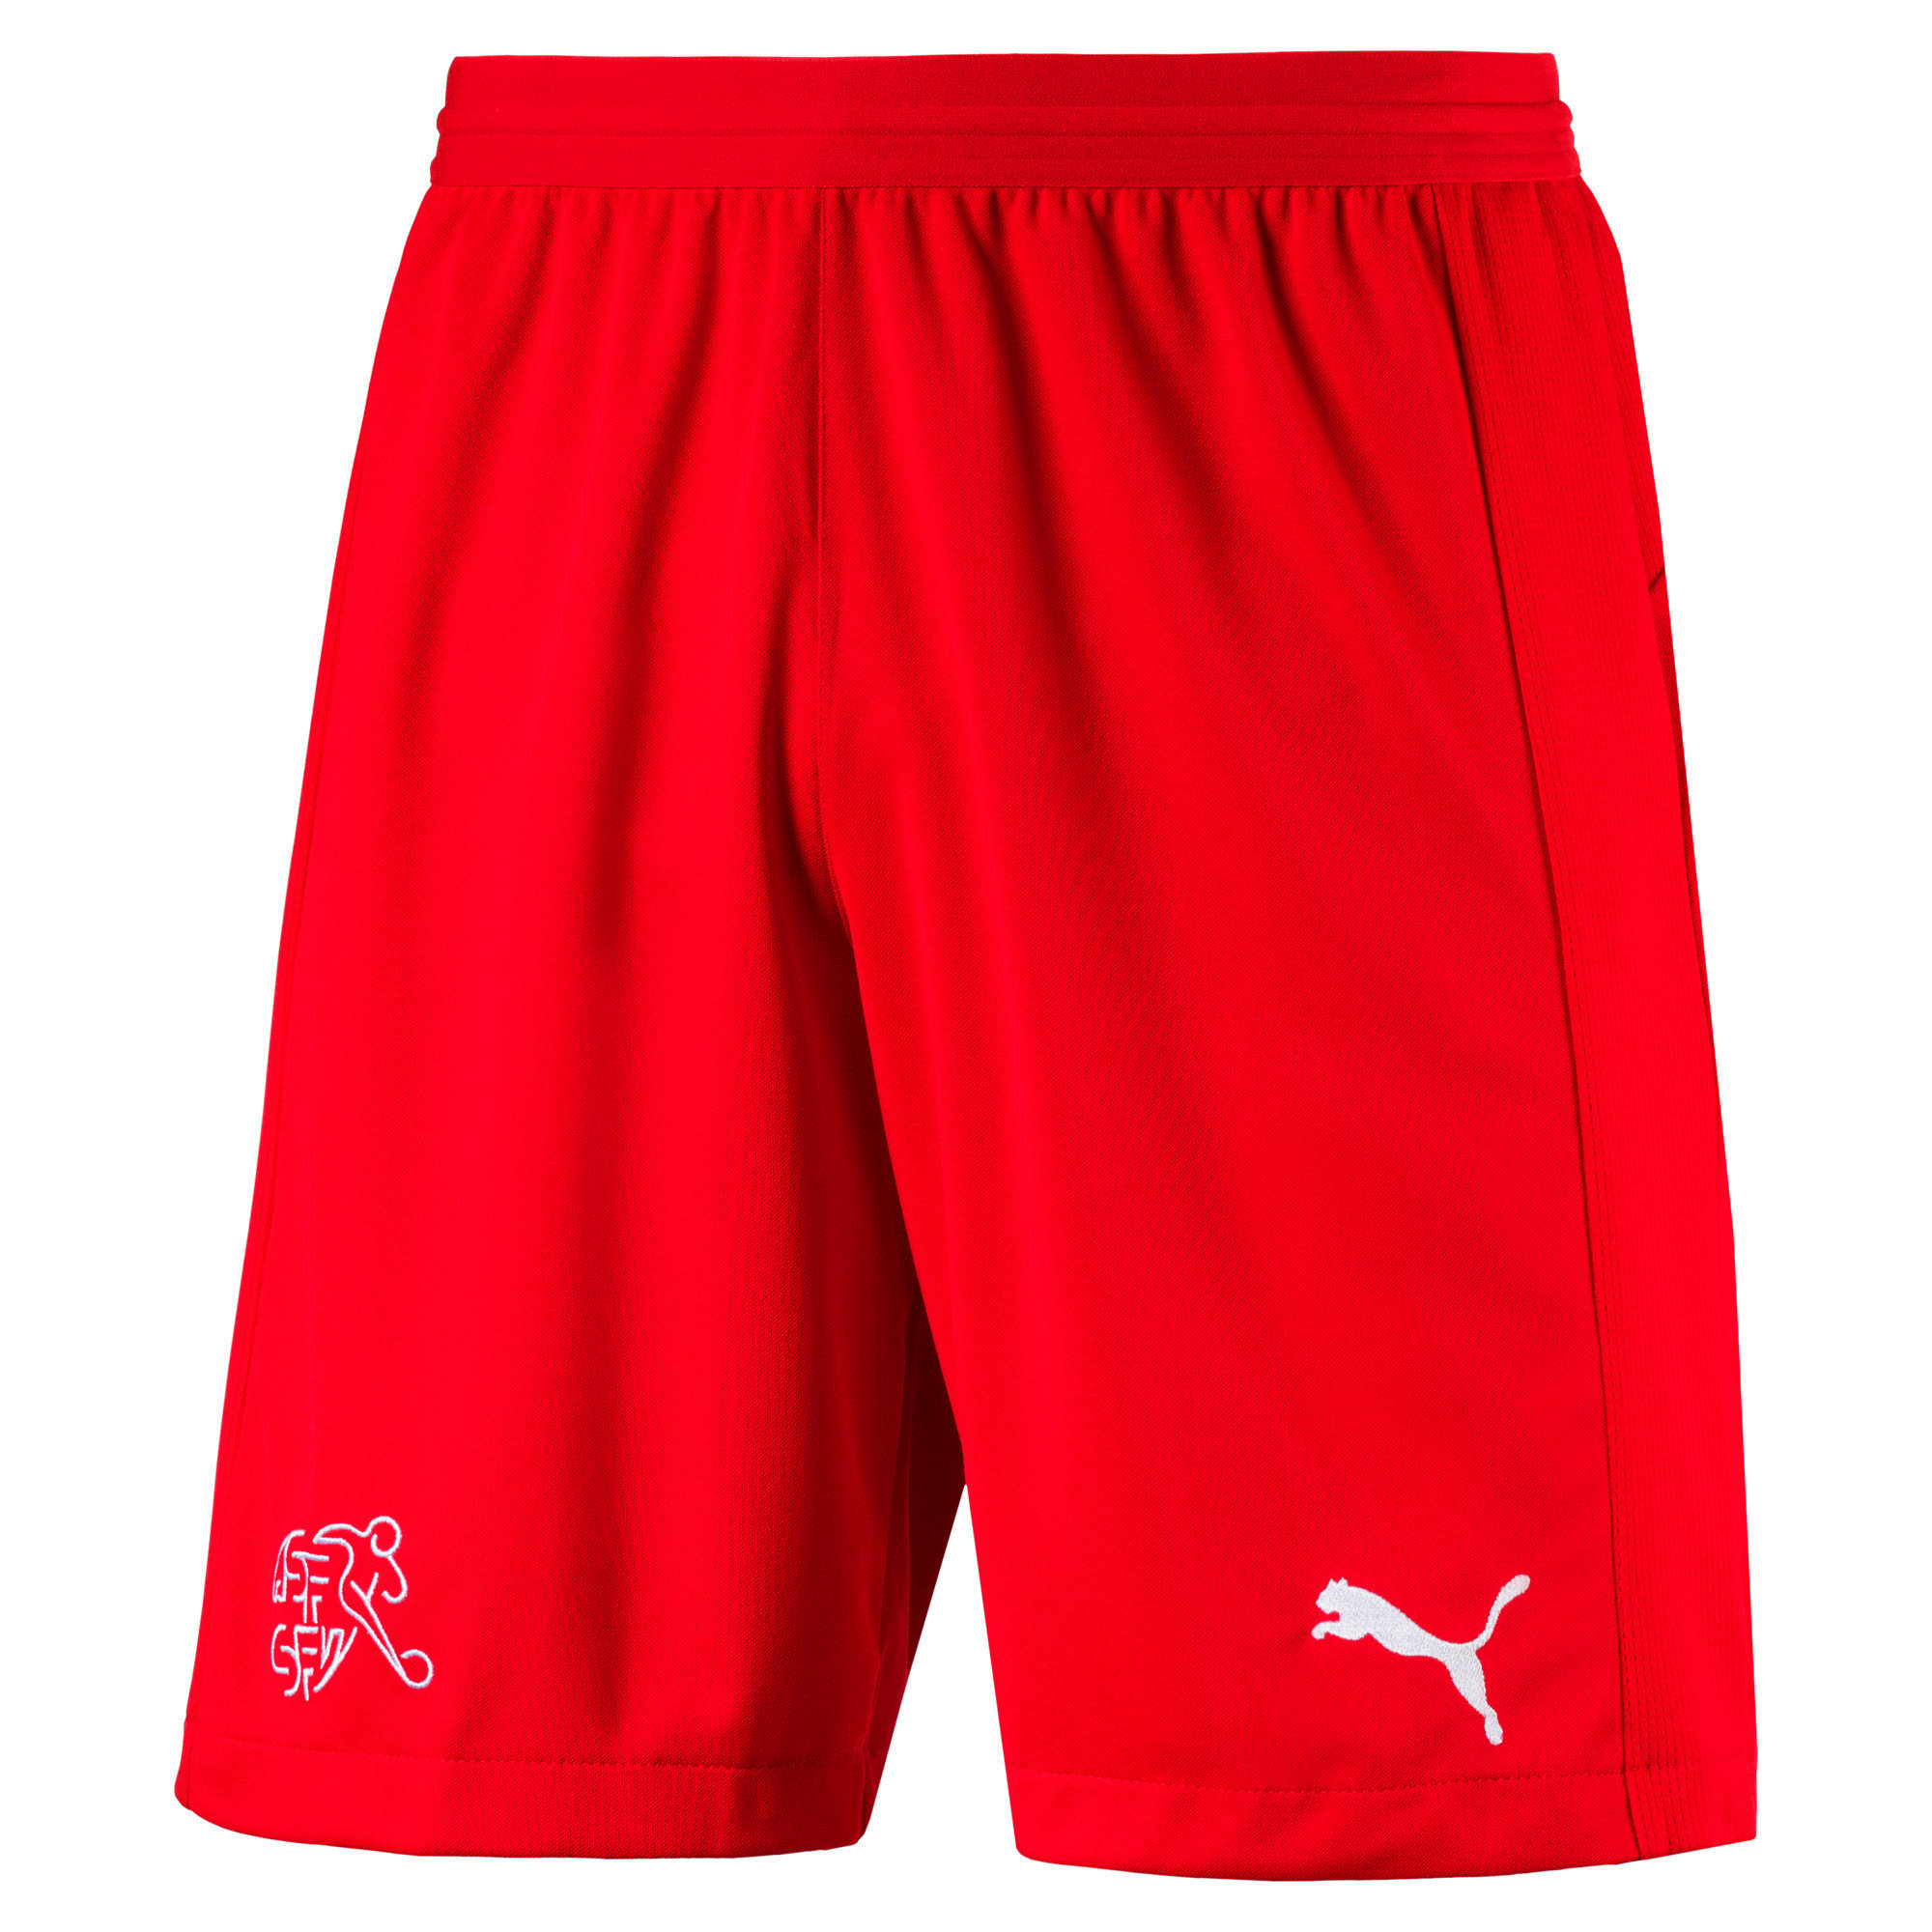 Thumbnail 5 of Switzerland Replica Shorts, Puma Red, medium